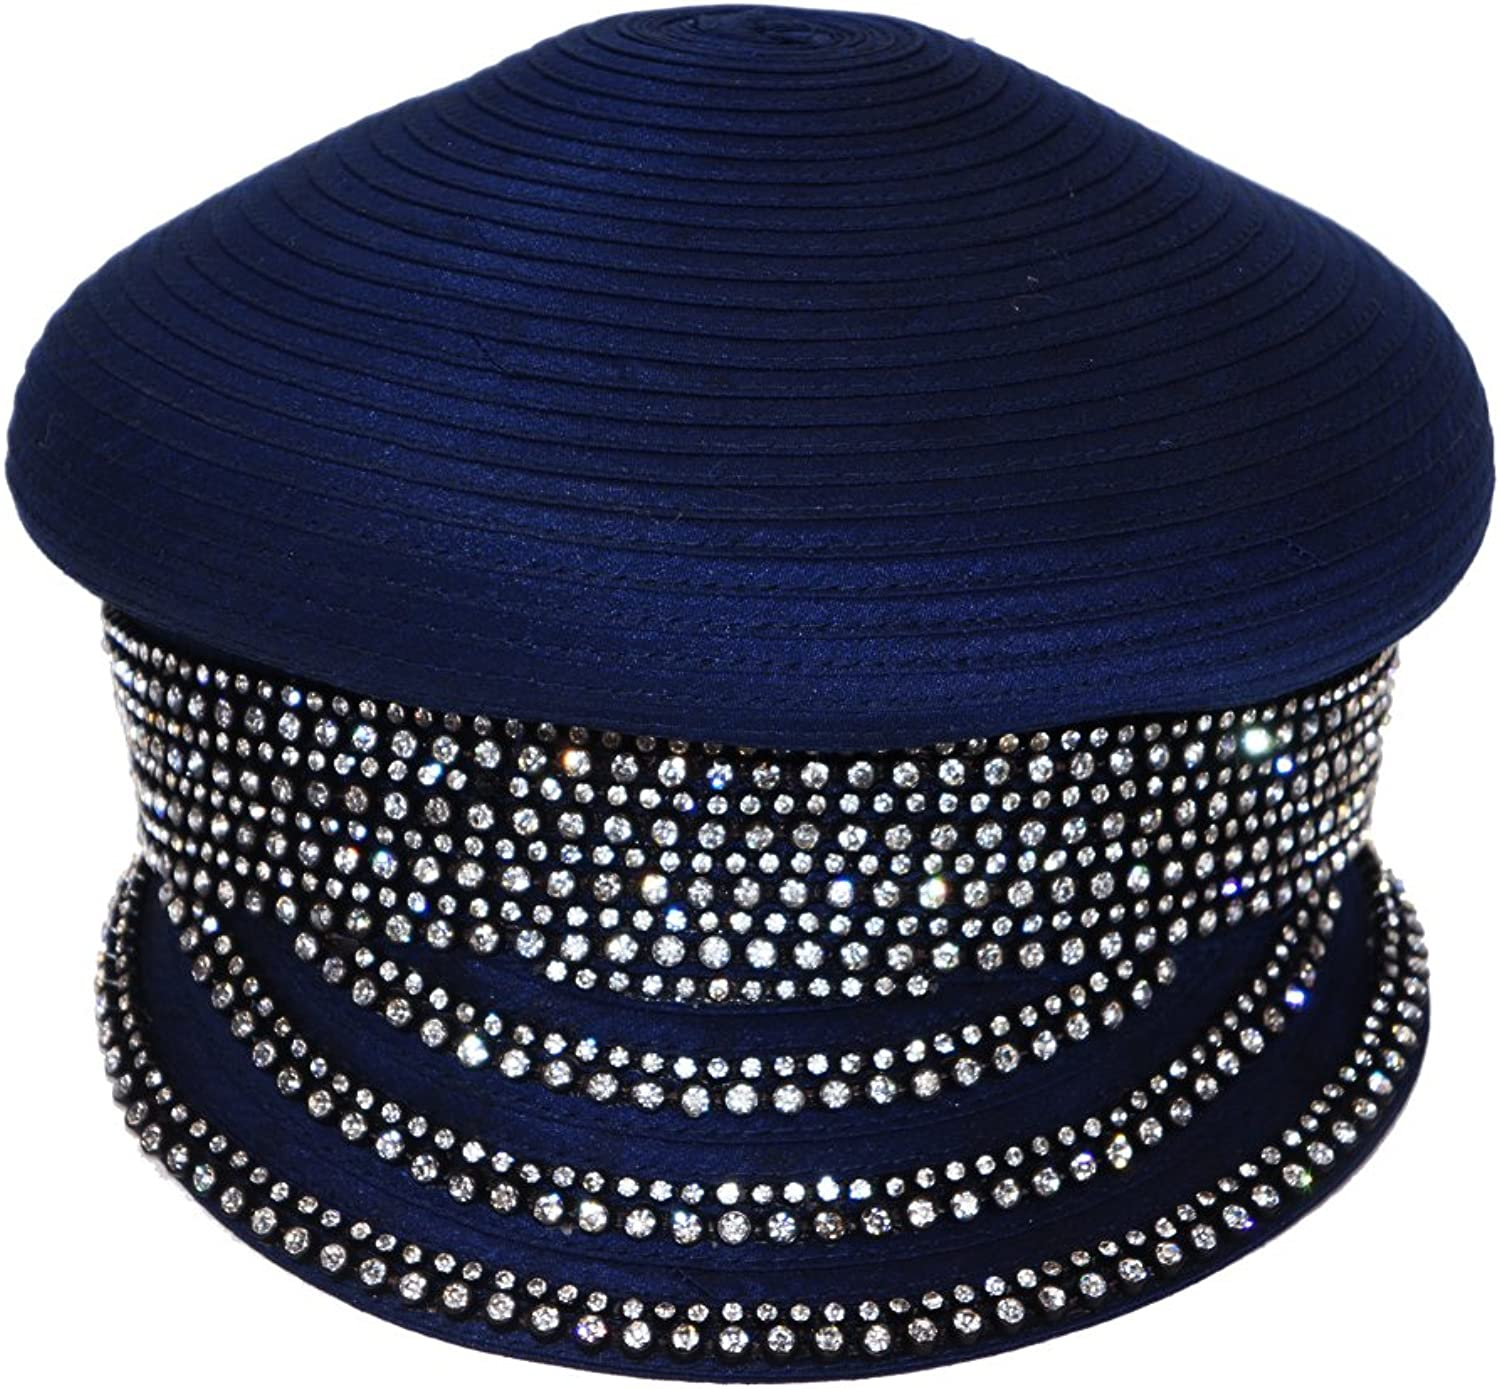 June's Young Ladies Church Hat Women Stones High Quality Army Style Royal bluee